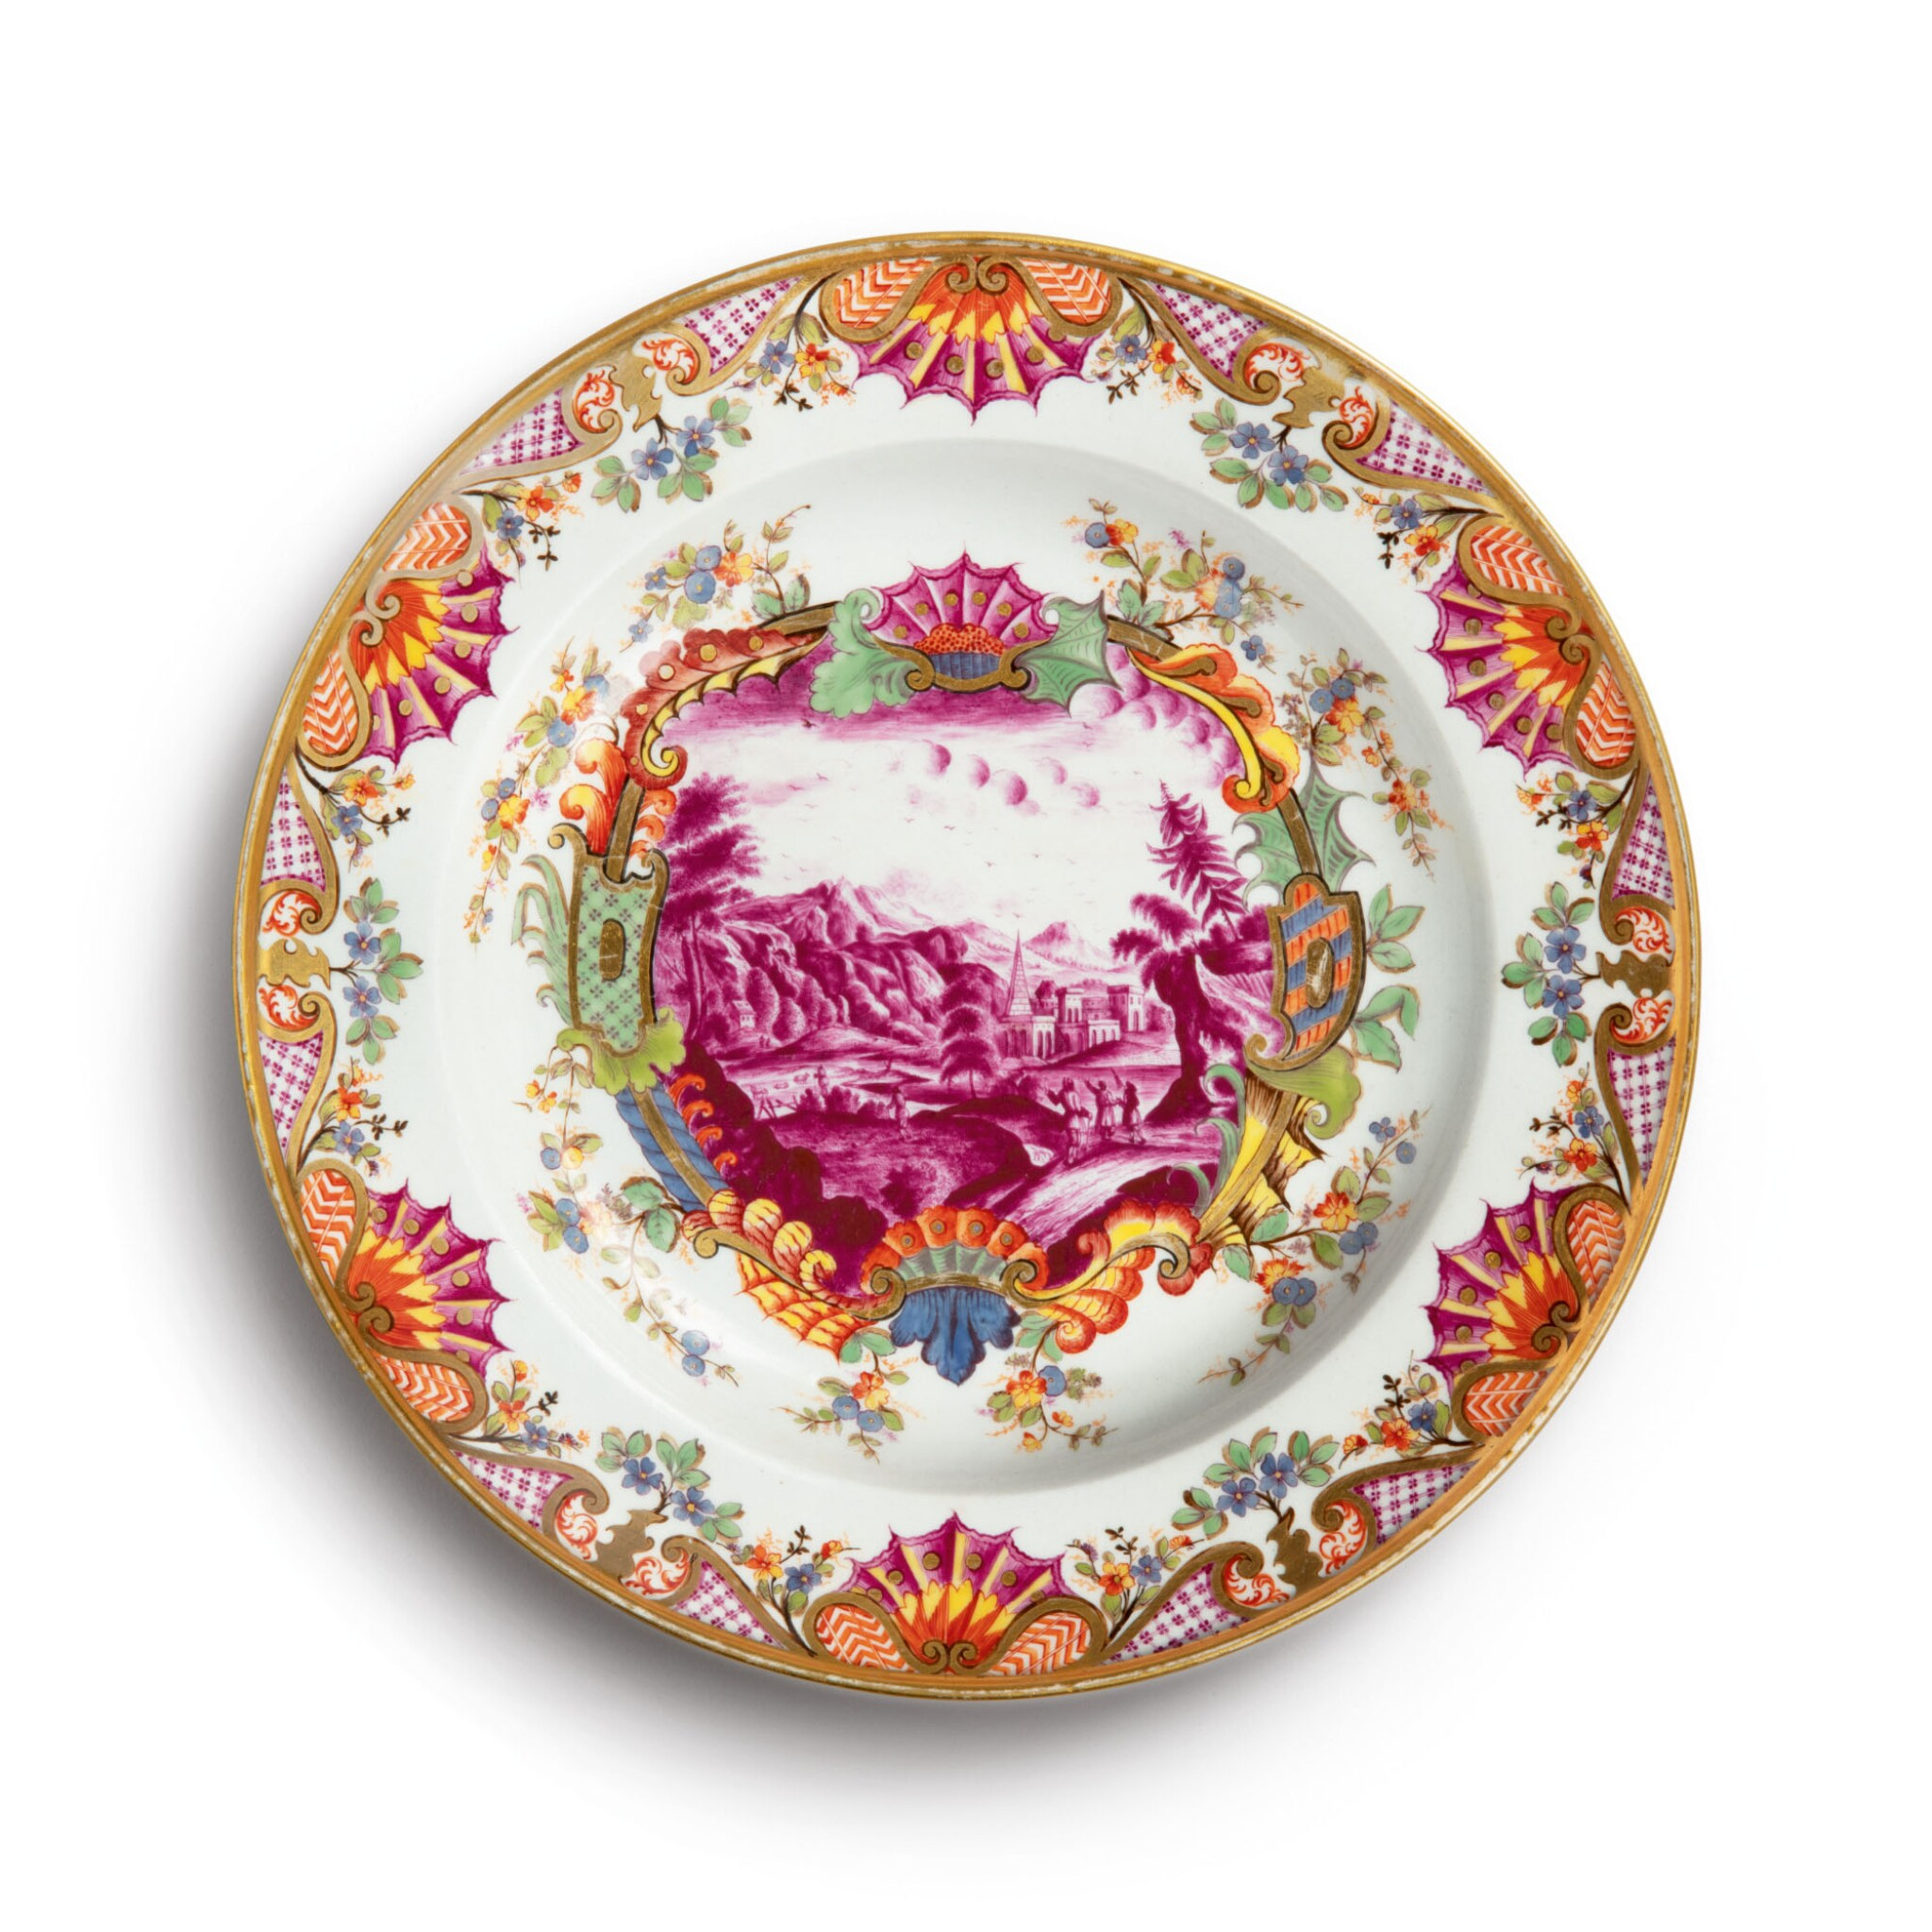 View full screen - View 1 of Lot 475. A HAUSMALER-STYLE PLATE 19TH CENTURY OR LATER.